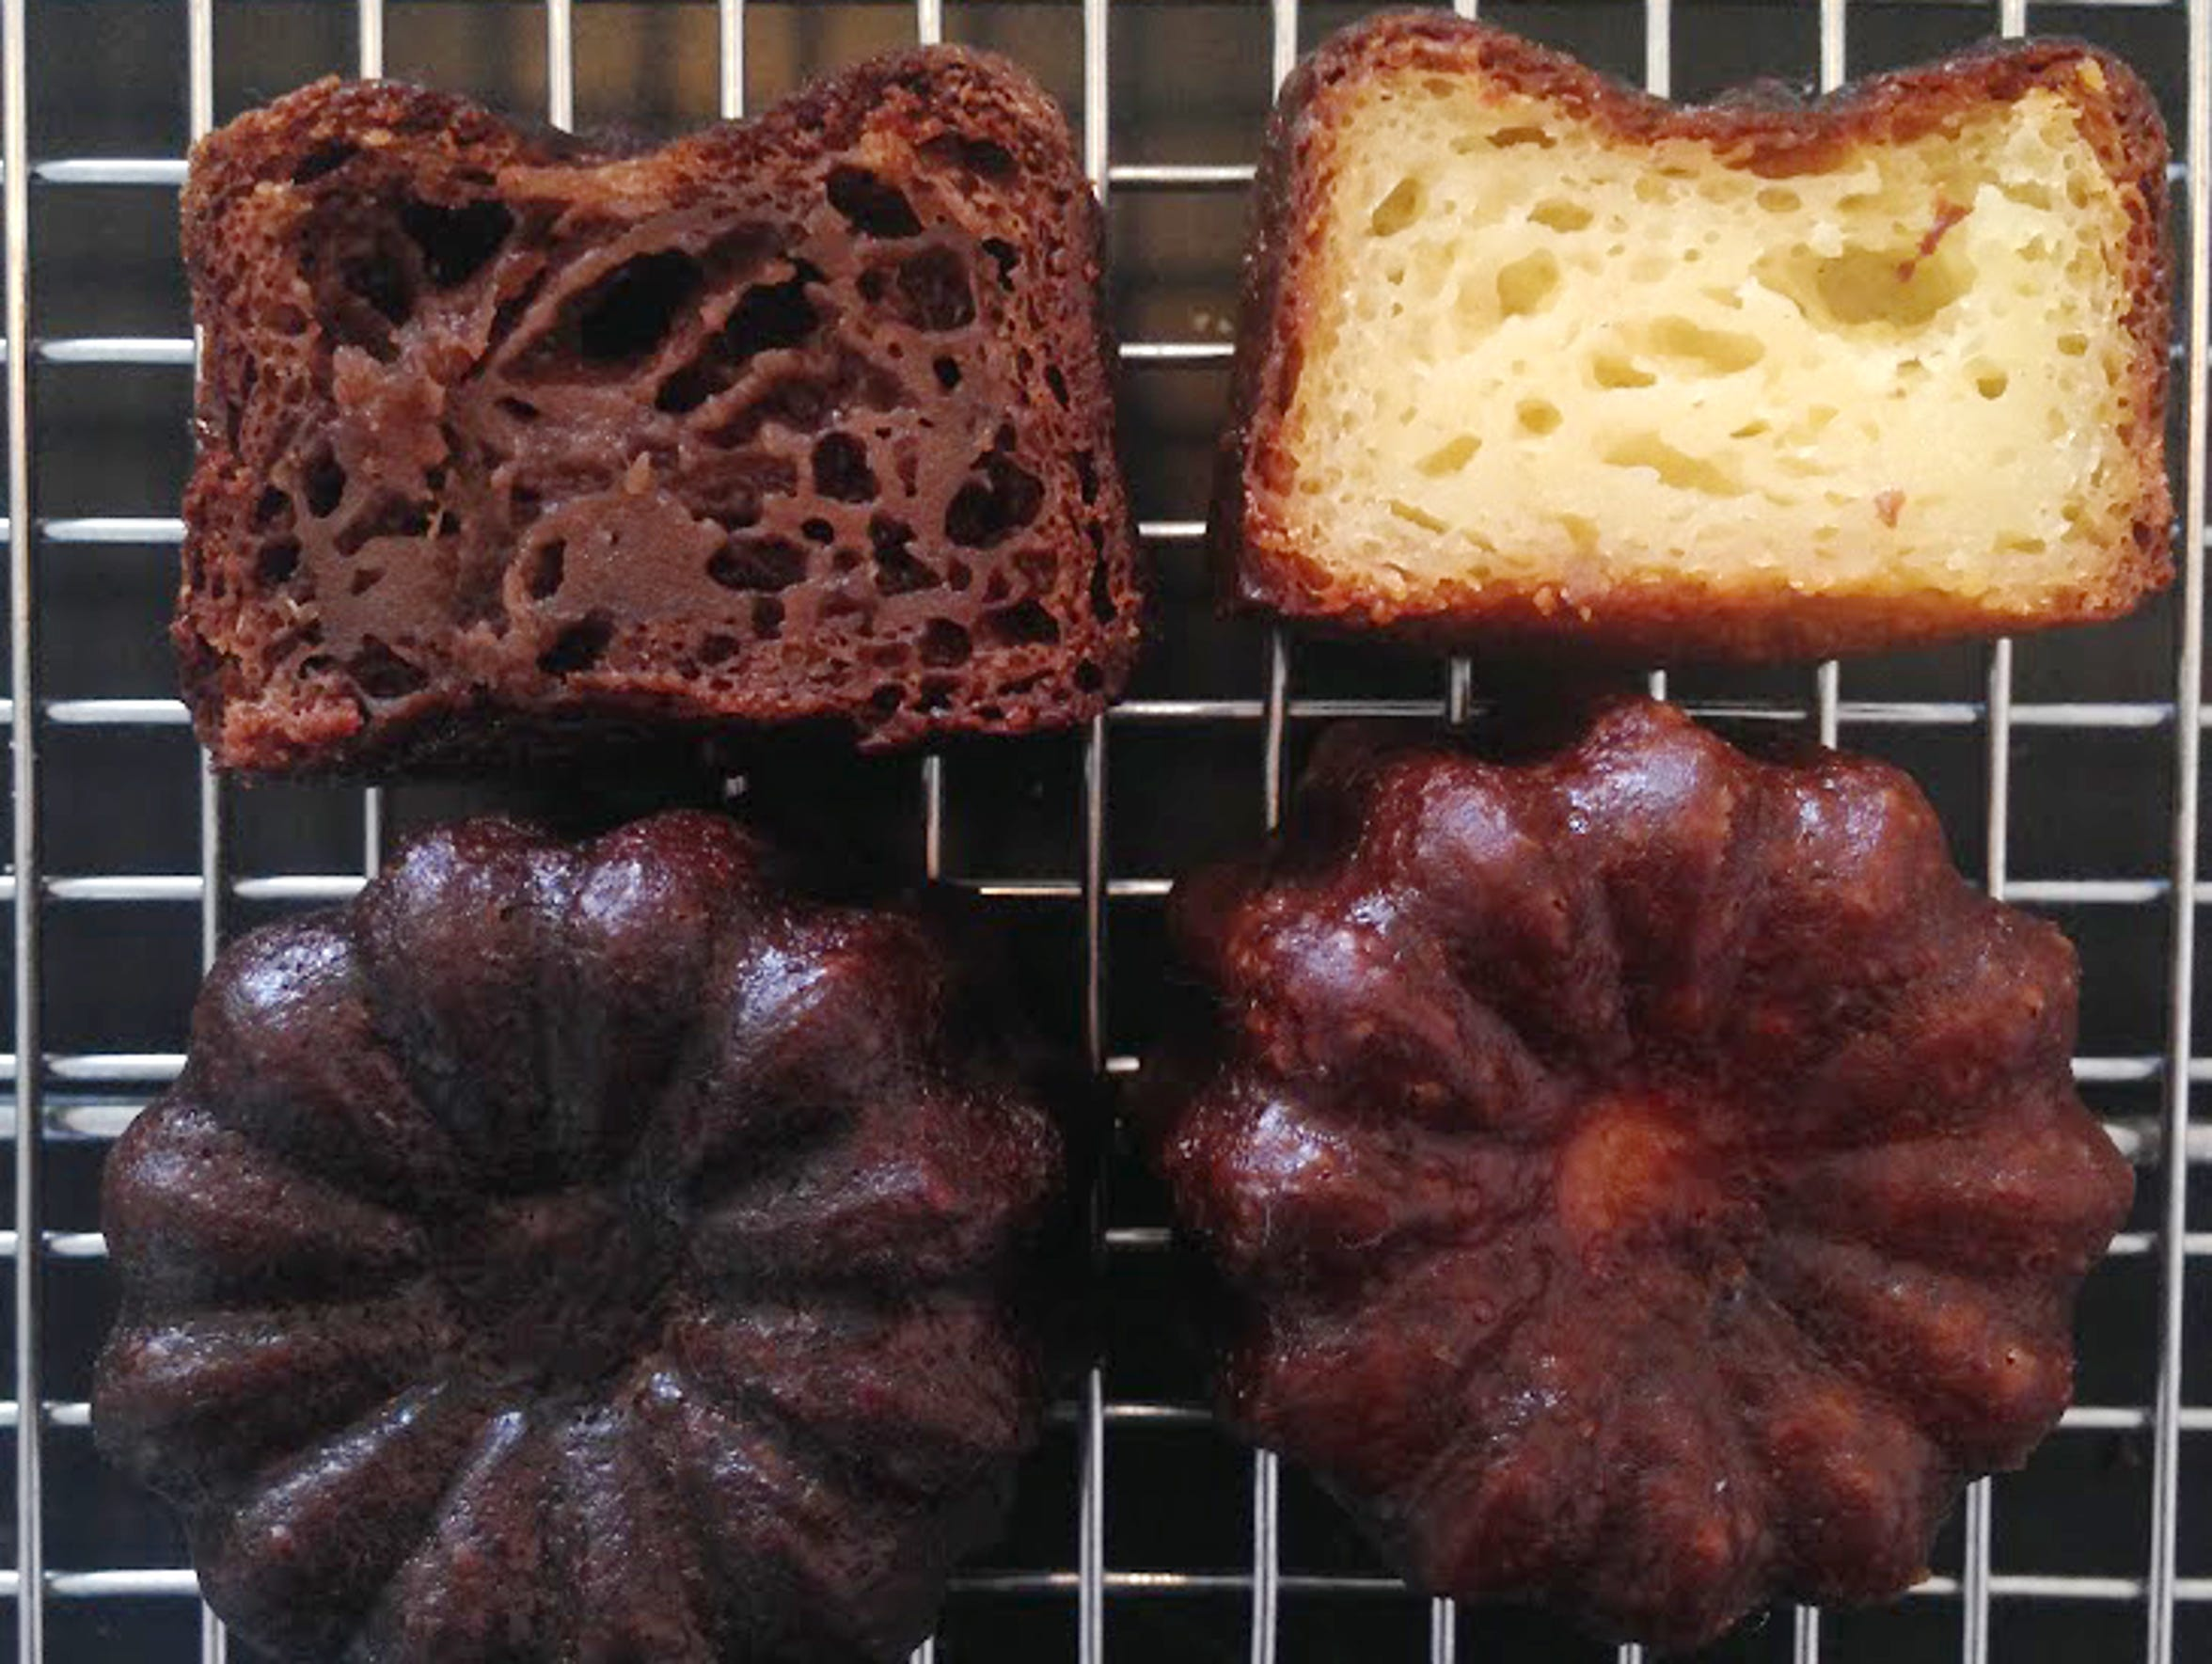 The caneles at Super Chunk Sweets & Treats in Scottsdale.